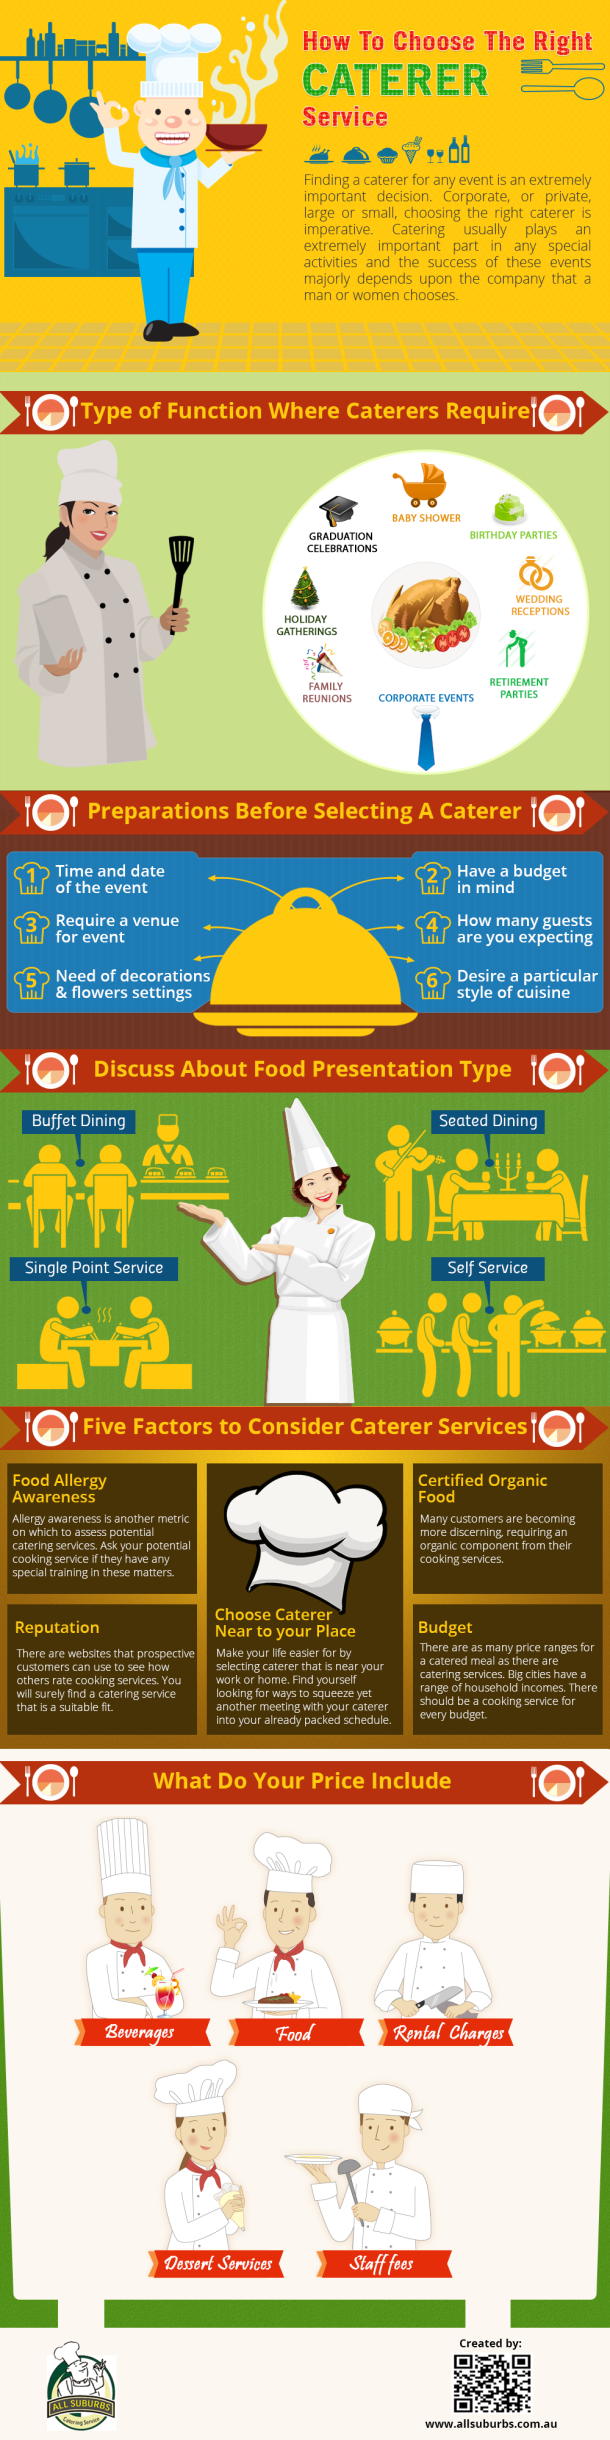 How To Choose The Right Caterer Service